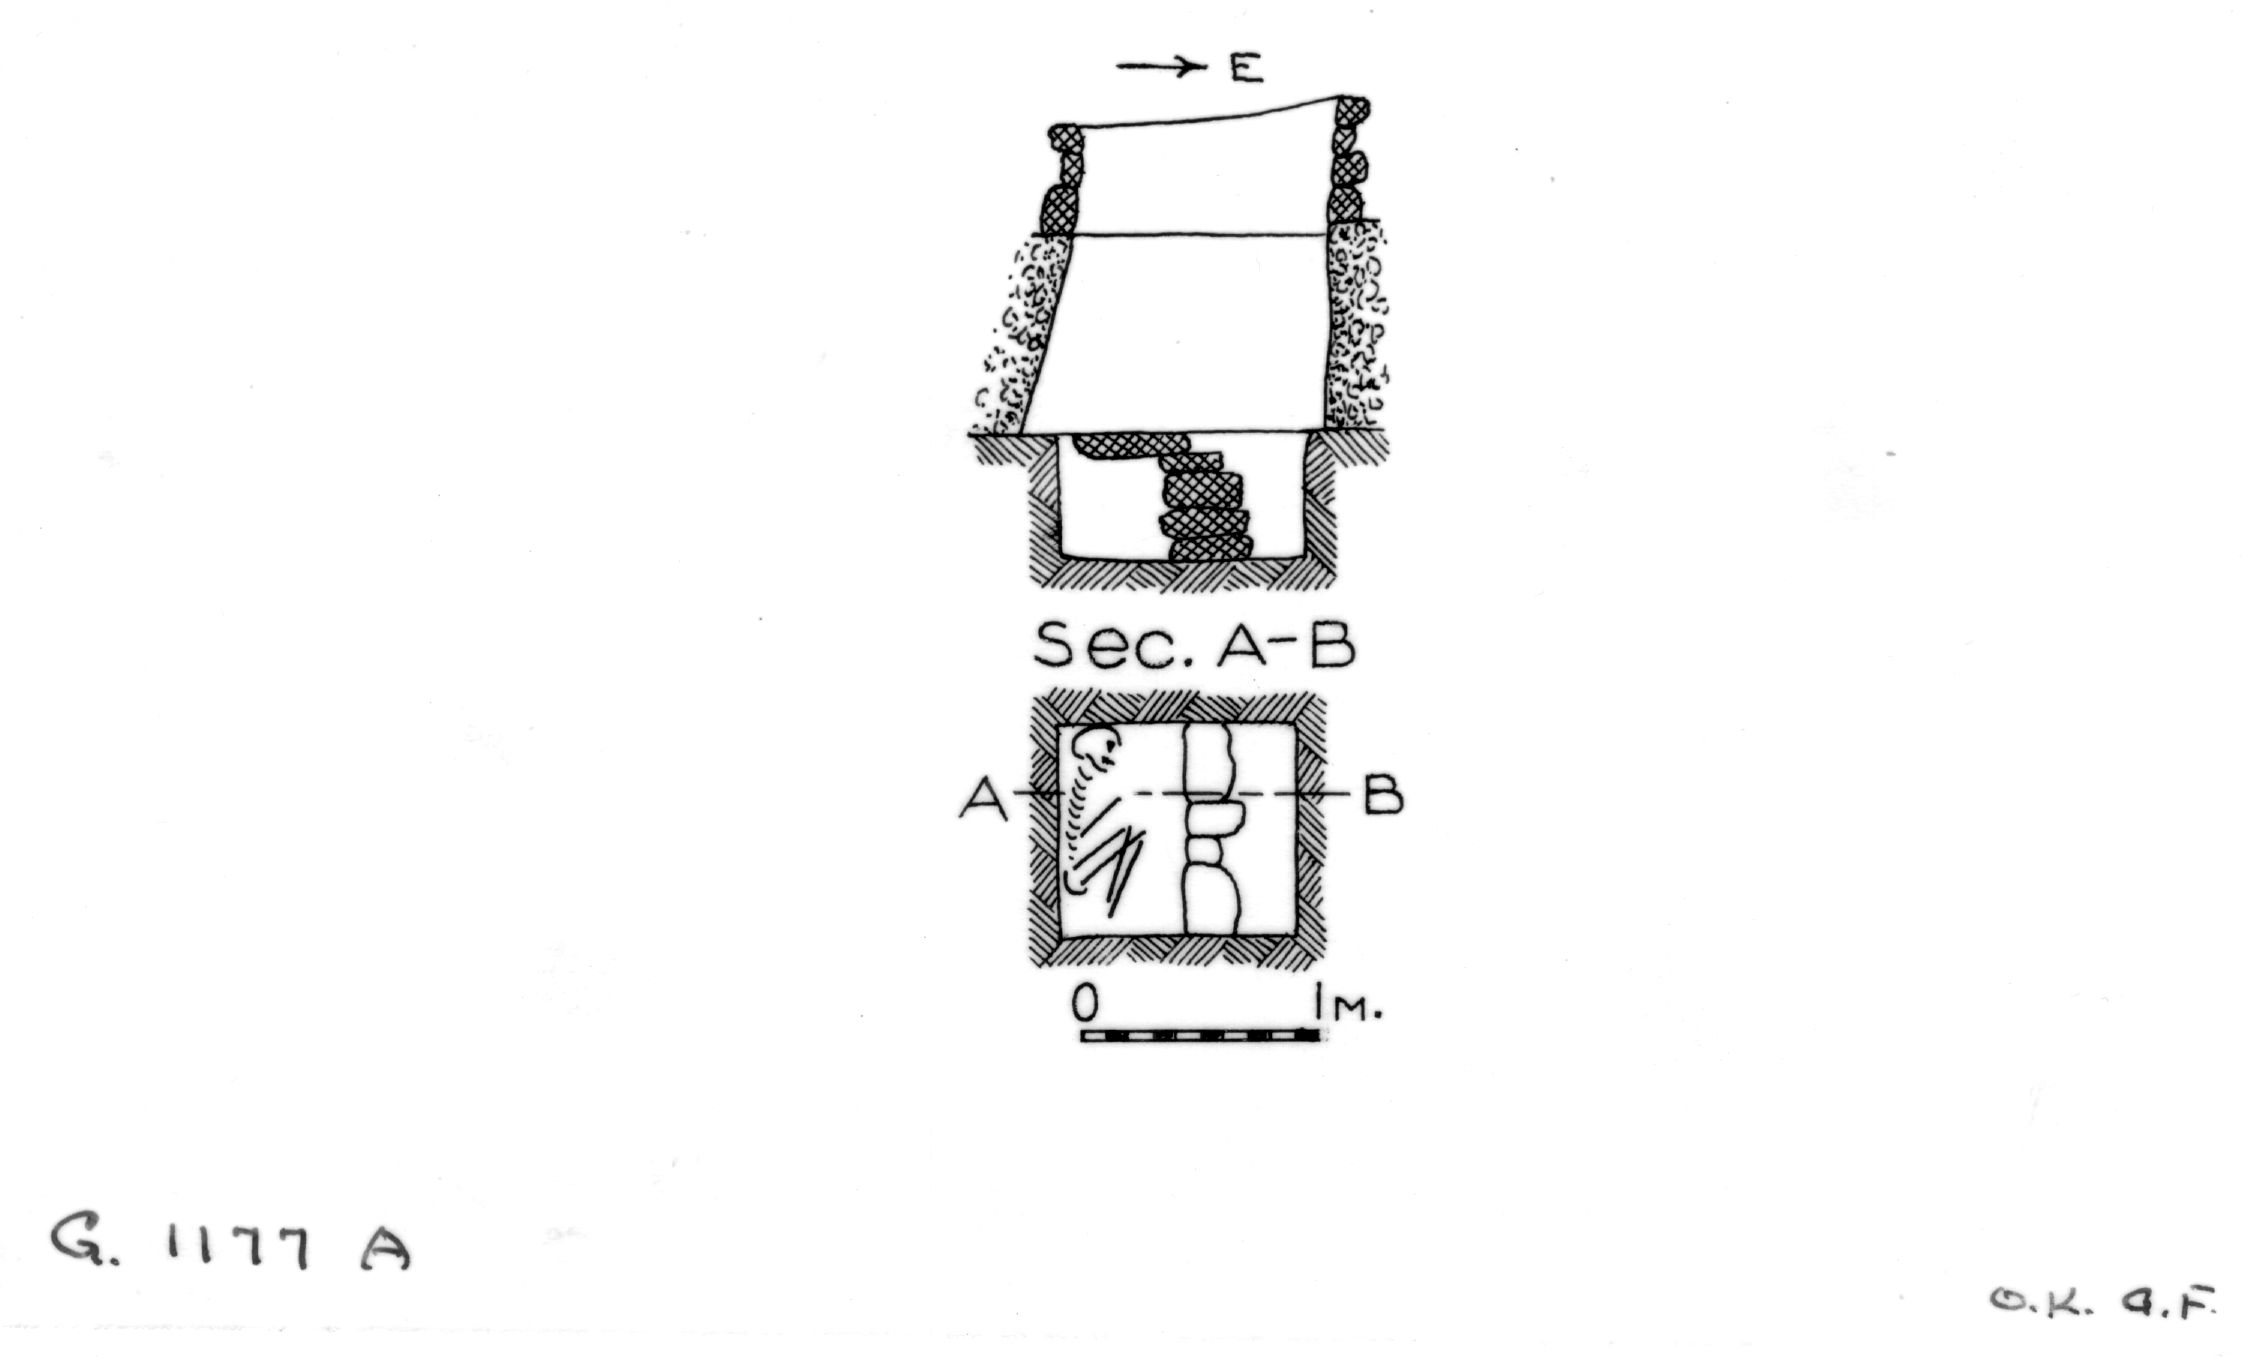 Maps and plans: G 1177, Shaft A